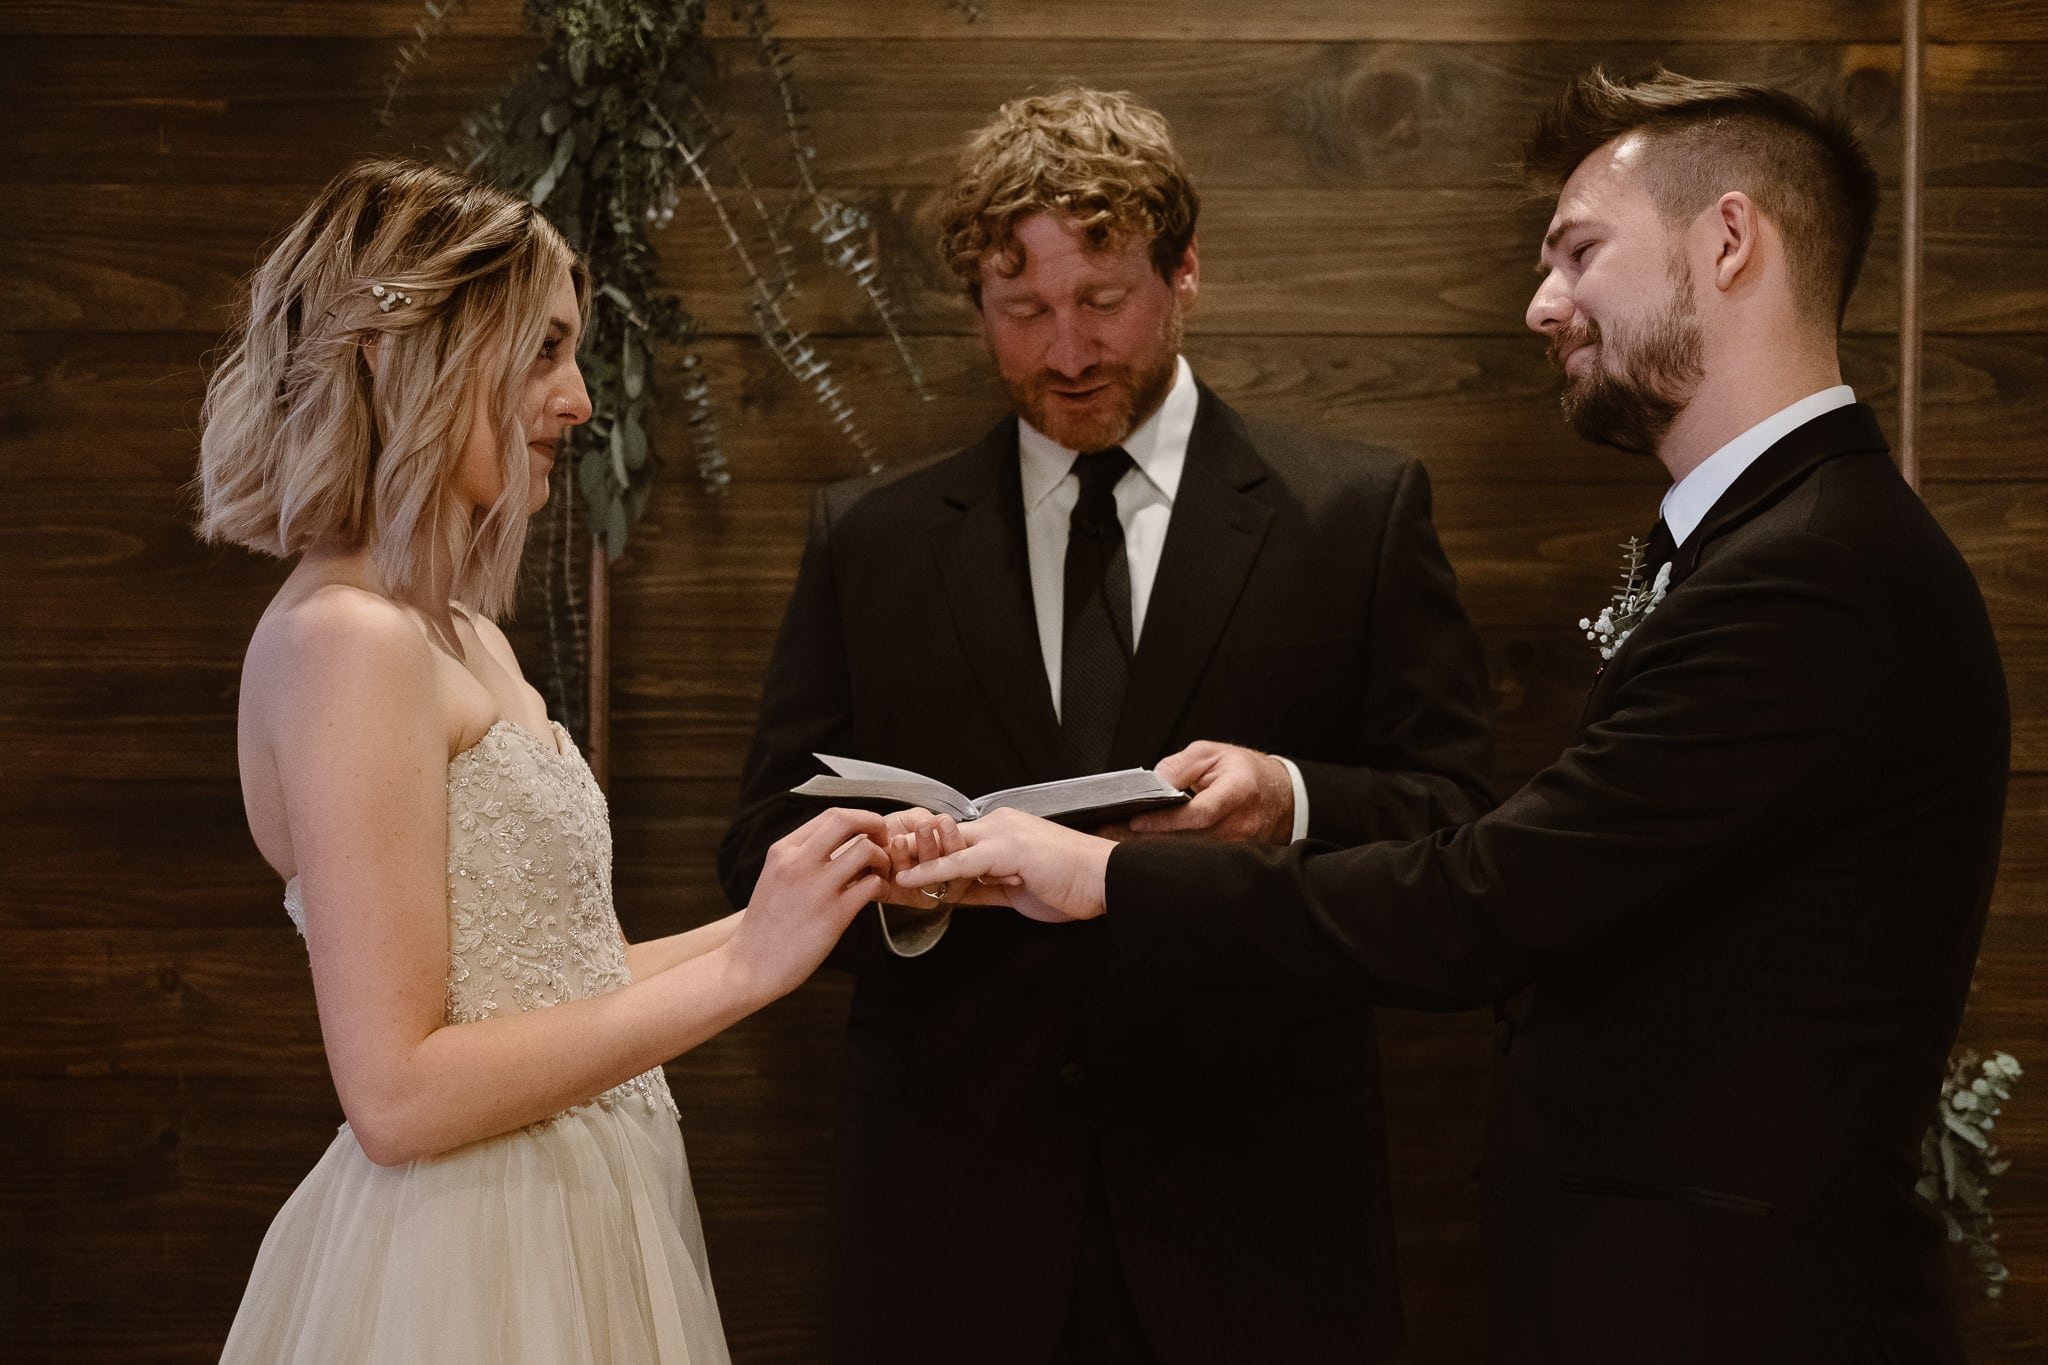 St Vrain Wedding Photographer | Longmont Wedding Photographer | Colorado Winter Wedding Photographer, Colorado industrial chic wedding ceremony, wedding ring exchange